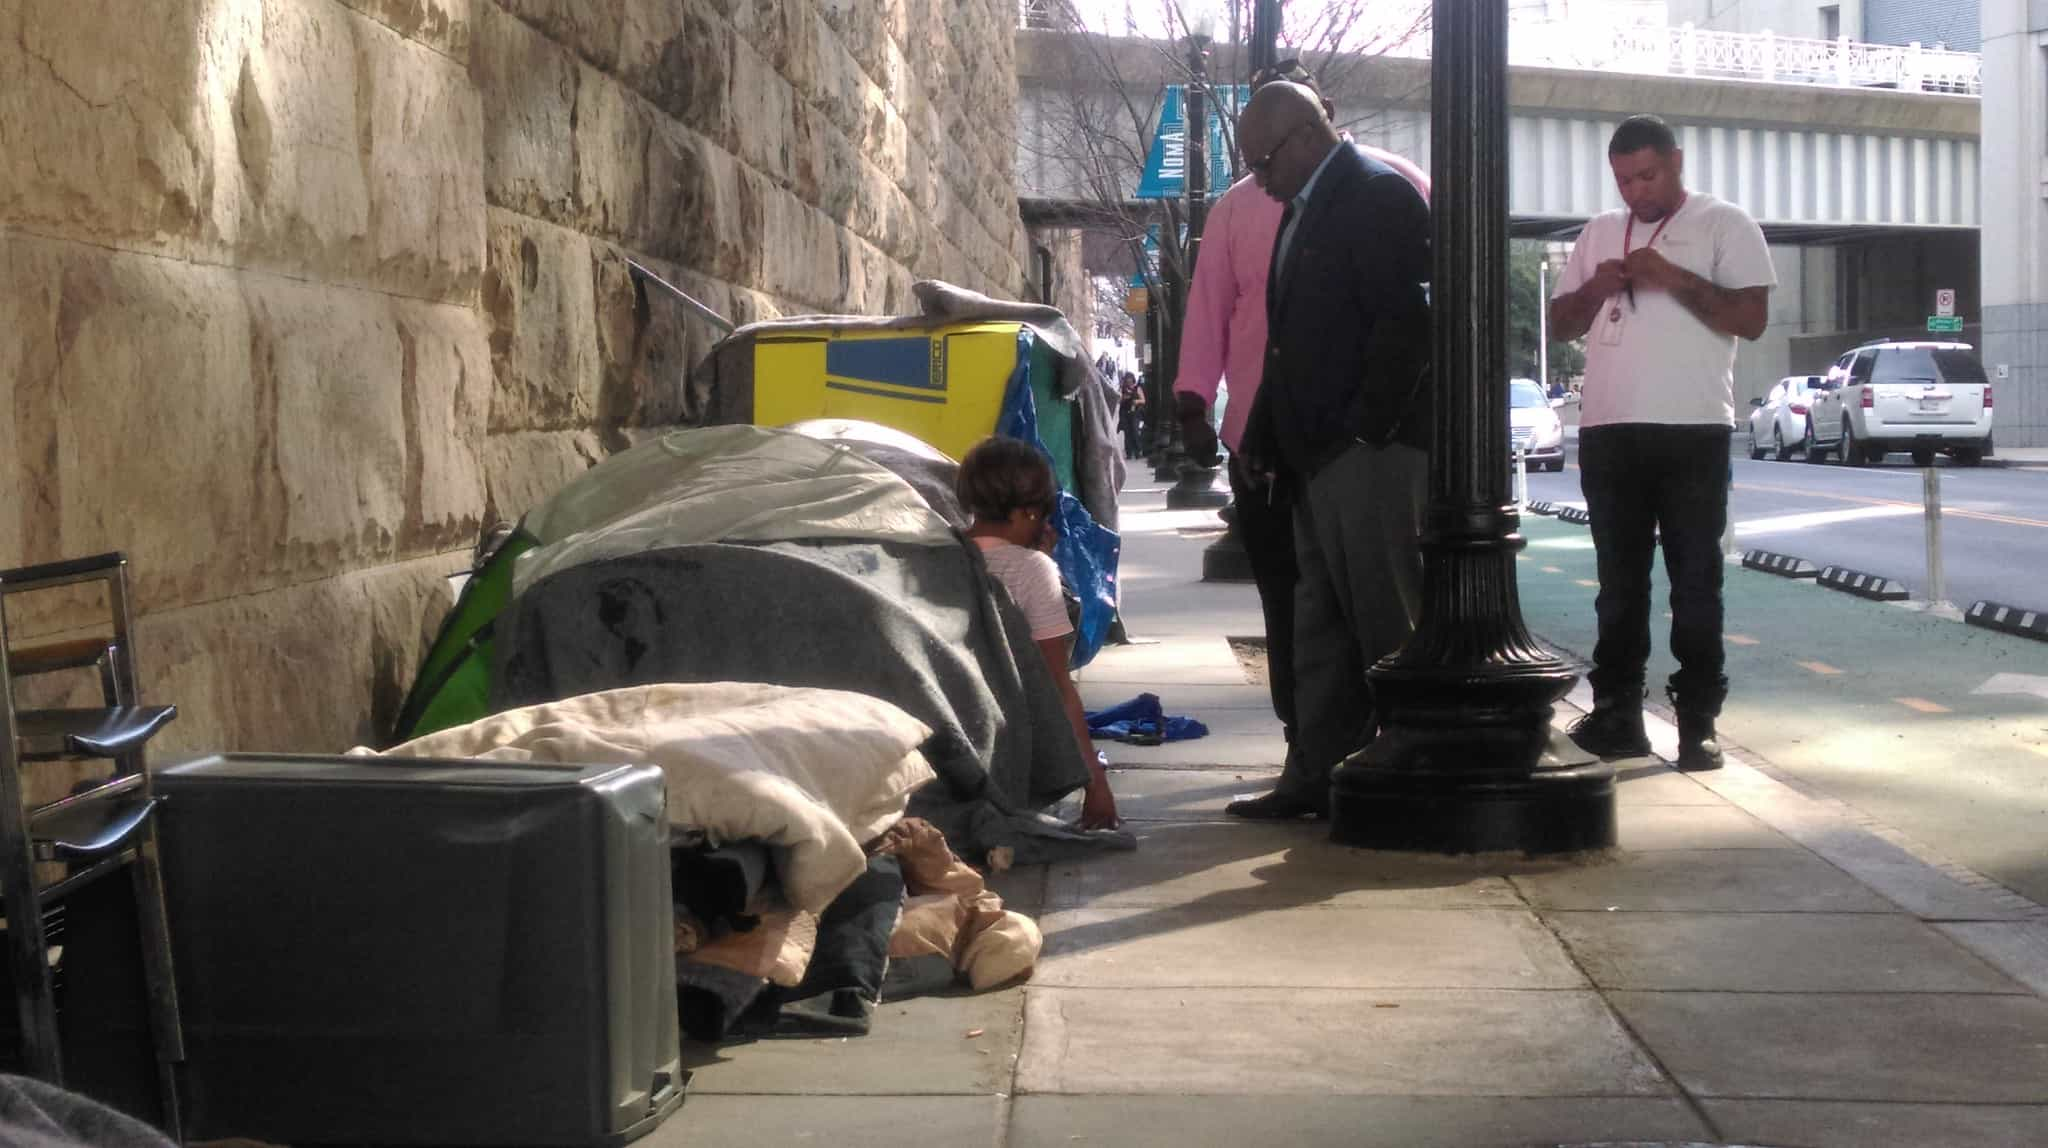 Three men stand by a line of tents pitched on a sidewalk in Washington, DC.